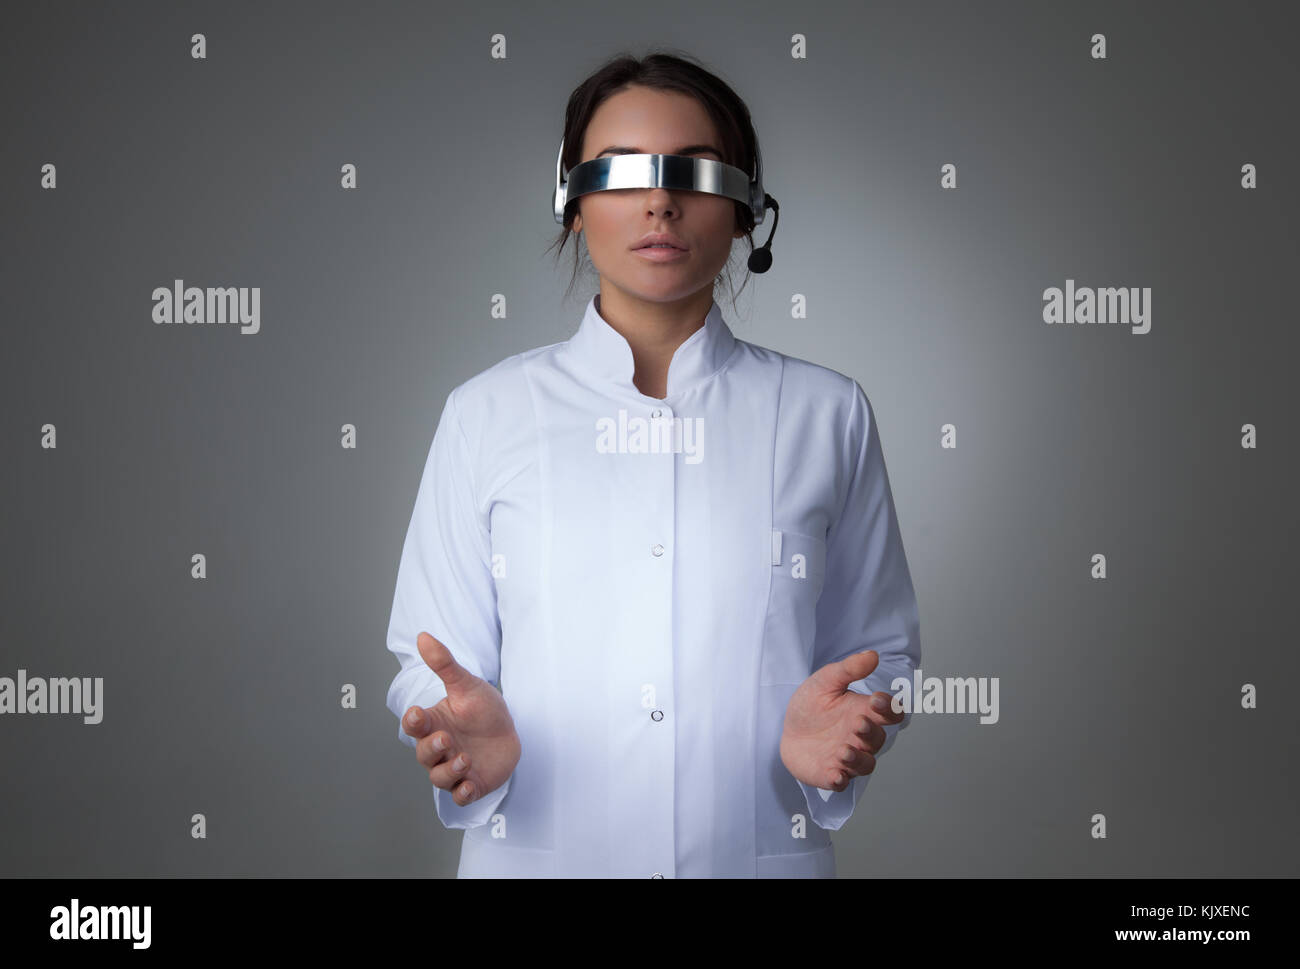 Female scientist or doctor using futuristic VR goggles headset with microphone and holding virtual object - Stock Image